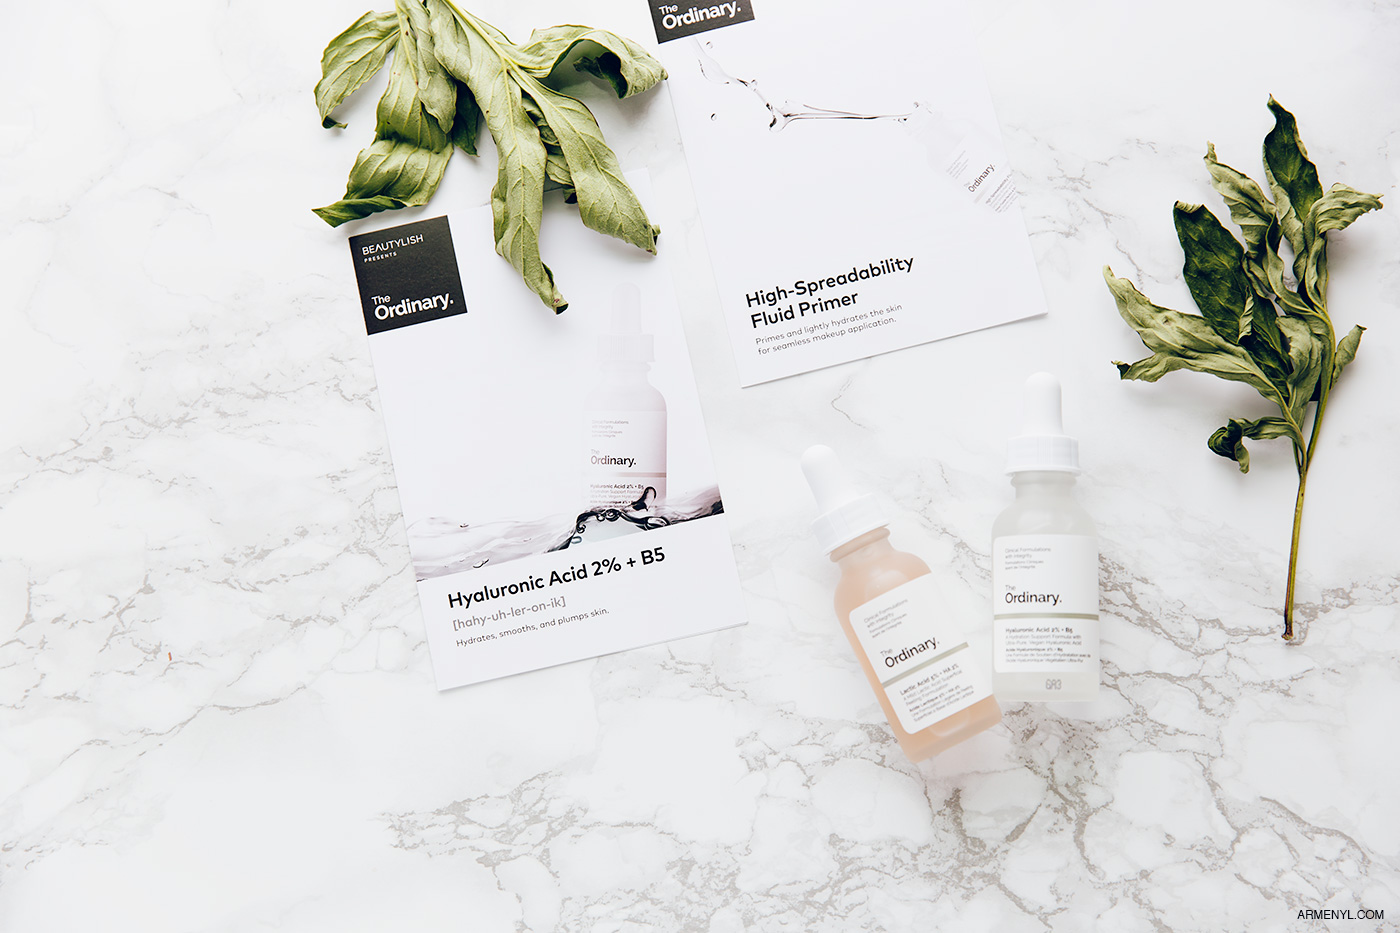 The Ordinary Skincare Beauty Product Review featuring Lactic Acid, High-spreadabilty primer, HYALURONIC ACID , photo & content creation by Armenyl